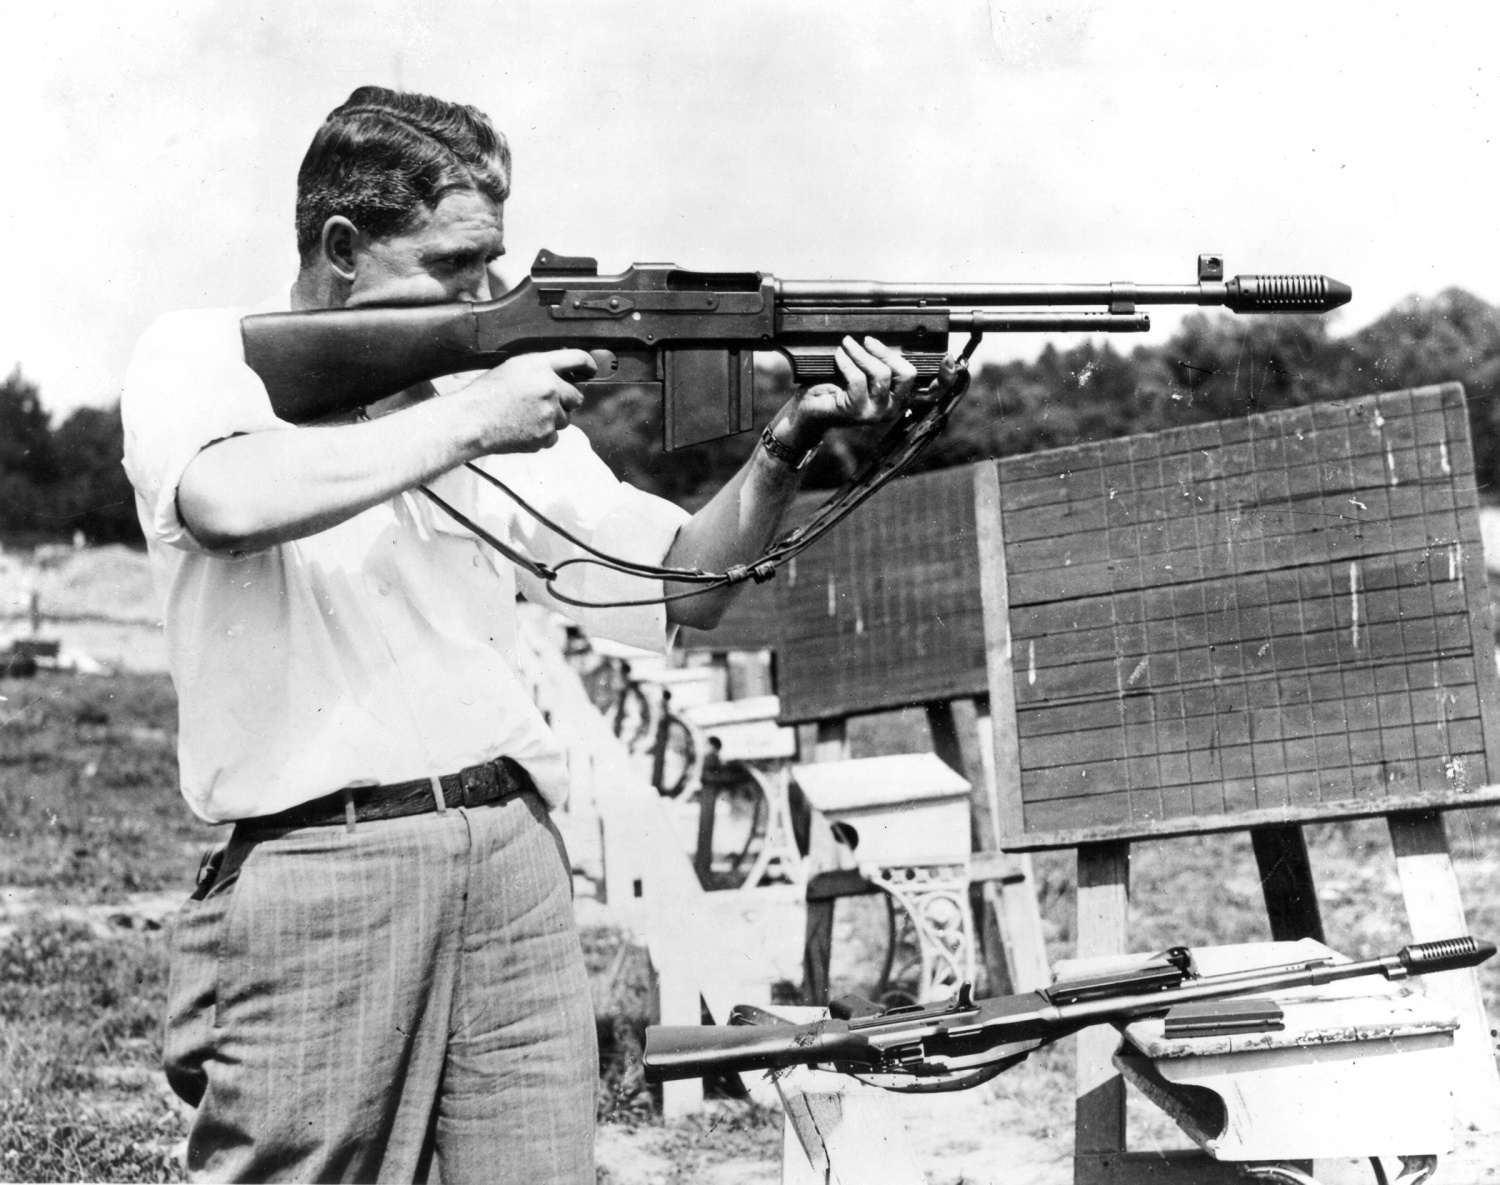 An FBI Agent trains with a Colt Monitor in 1936. Photo by the Federal Bureau of Investigation.